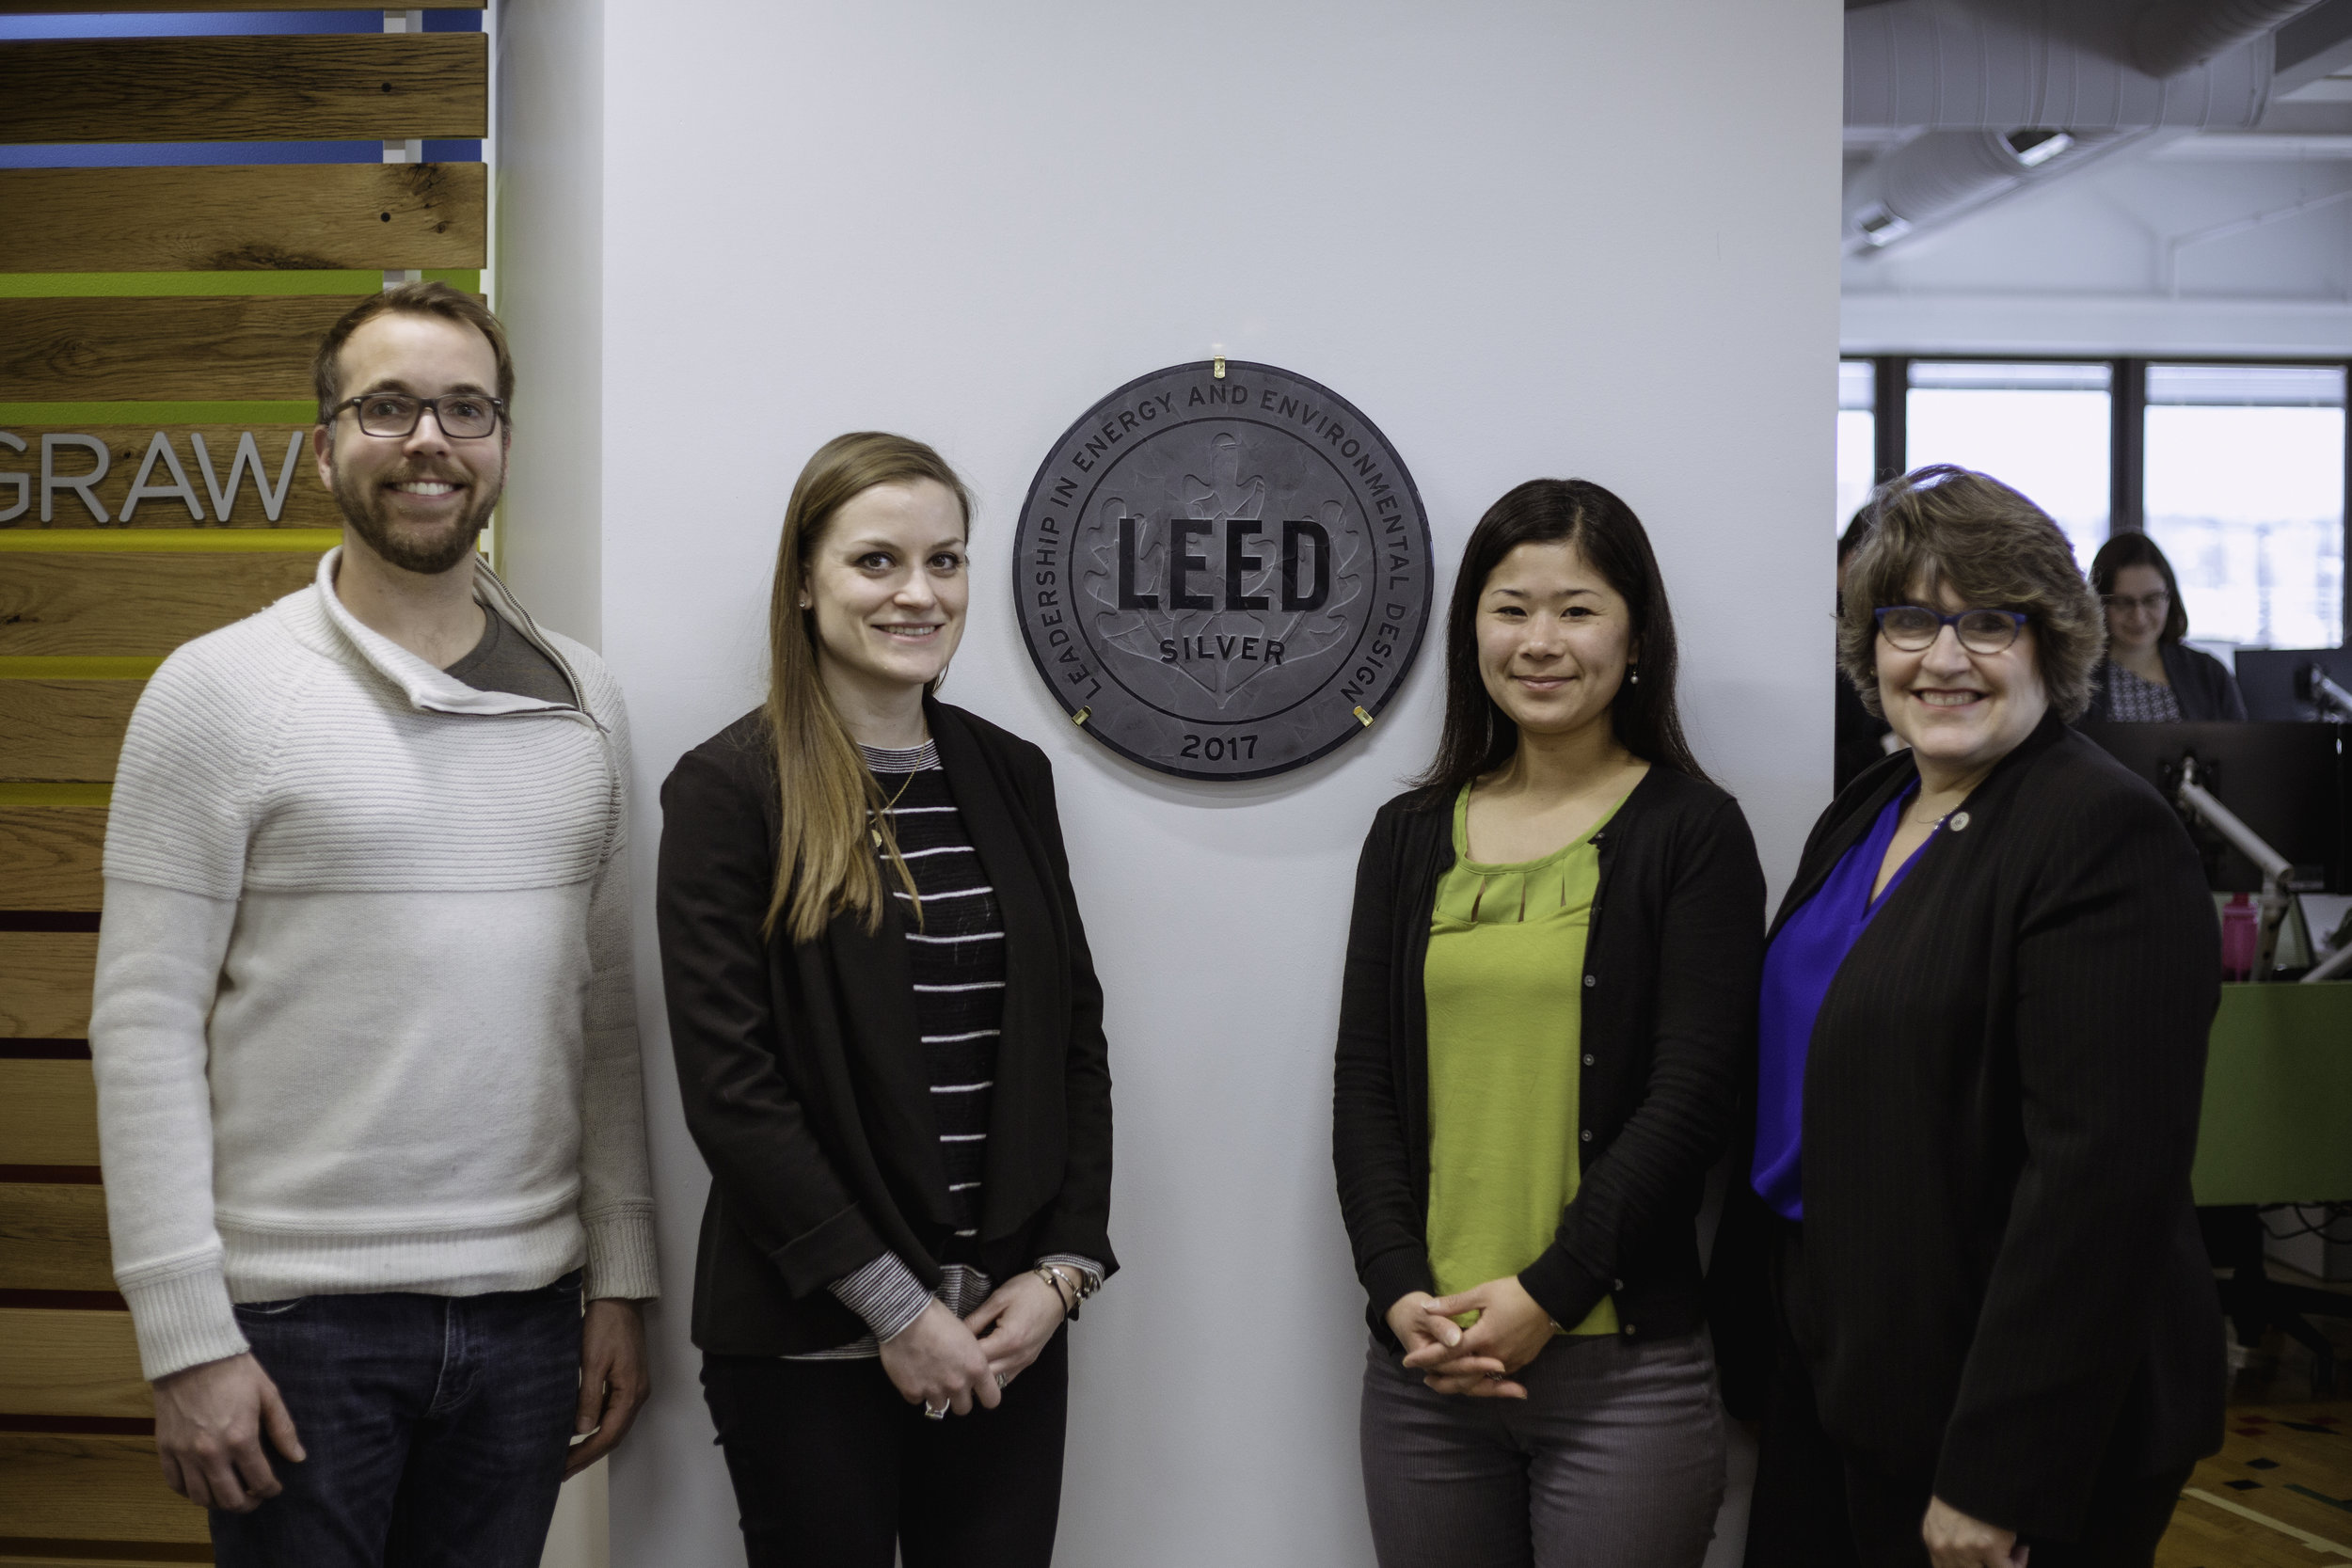 Pictured left to right: Associate Principal Jason Evans, Ashley McGraw; Principal Susanne Angarano, Ashley McGraw; Project Administrator Yukari Treible, Ashley McGraw; and Director Tracie Hall,New York Upstate U.S. Green Building Council